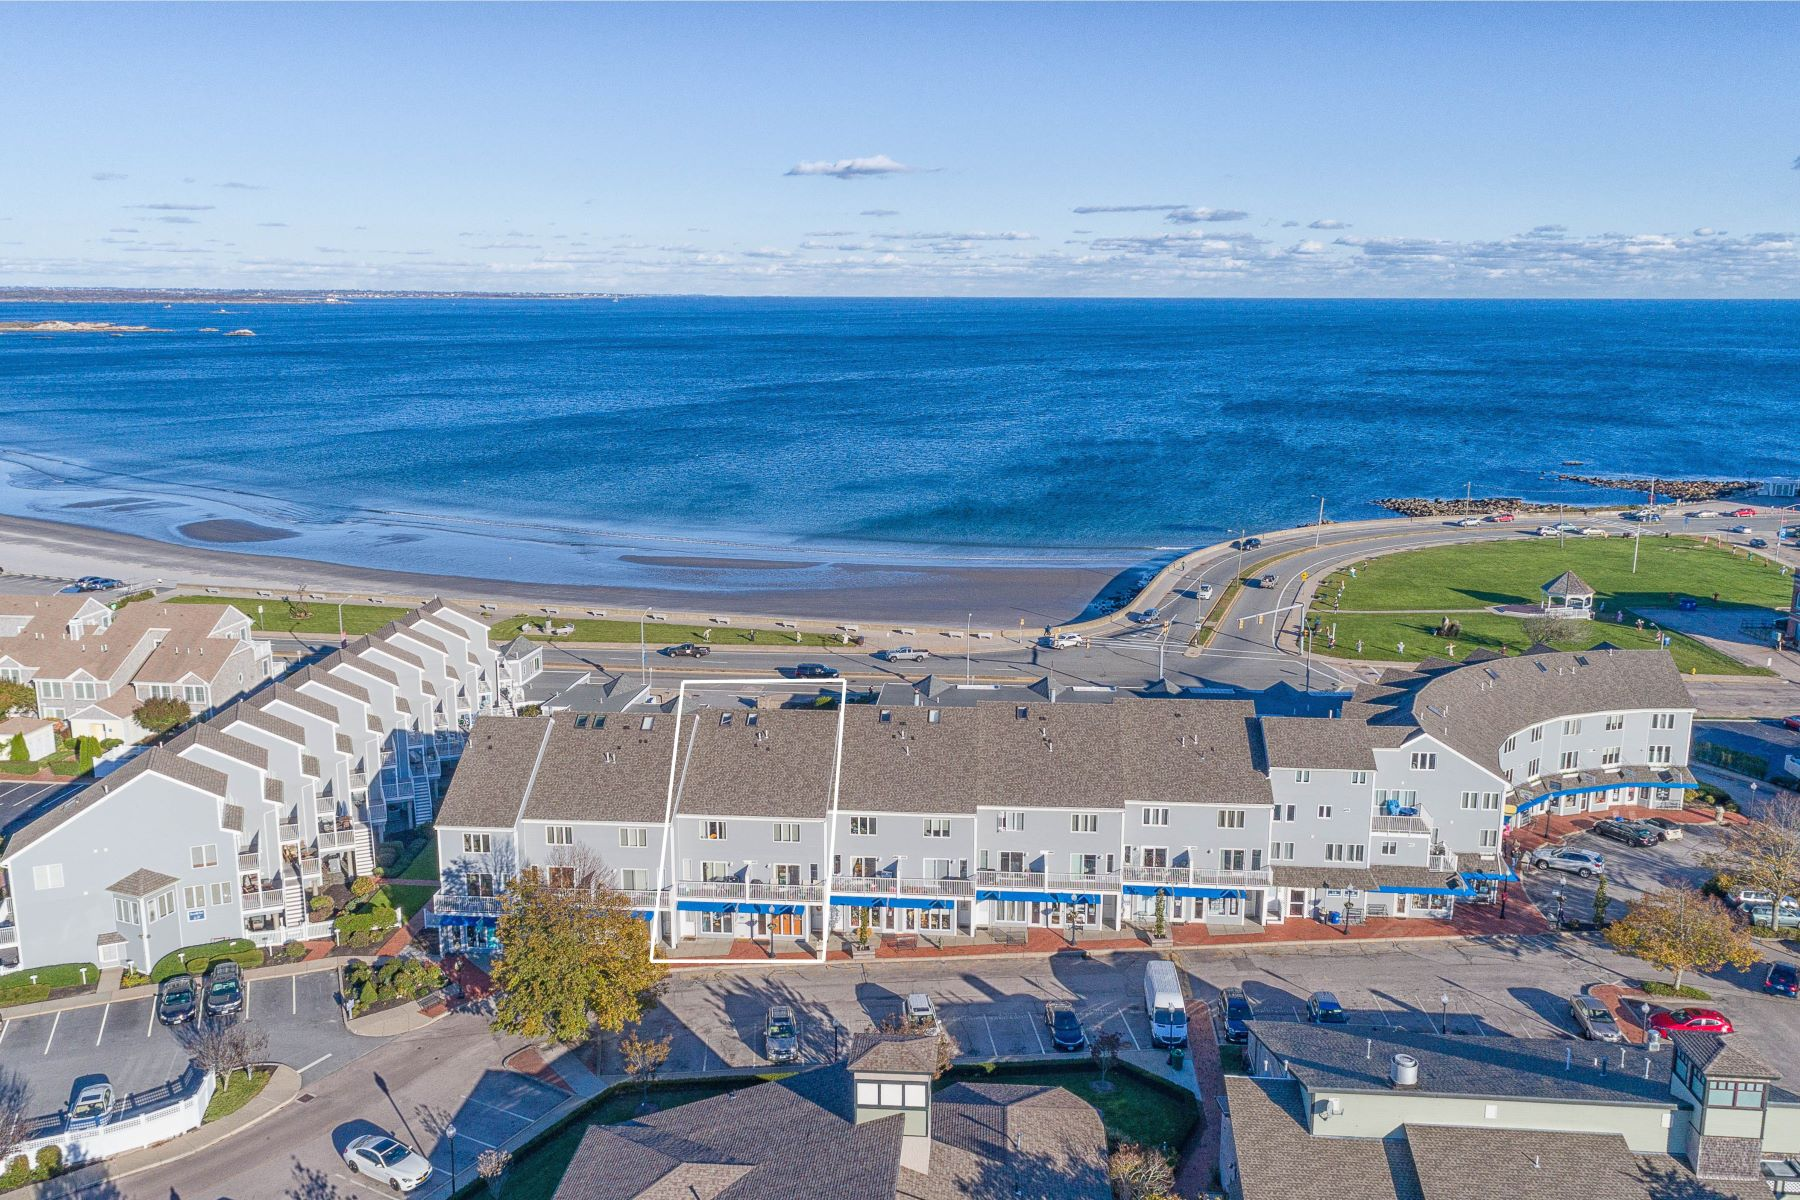 condominiums for Sale at 10 - 10 A Pier Market Pl, #10, Narragansett, RI 10 - 10 A Pier Market Pl 10, Narragansett, Rhode Island 02882 United States